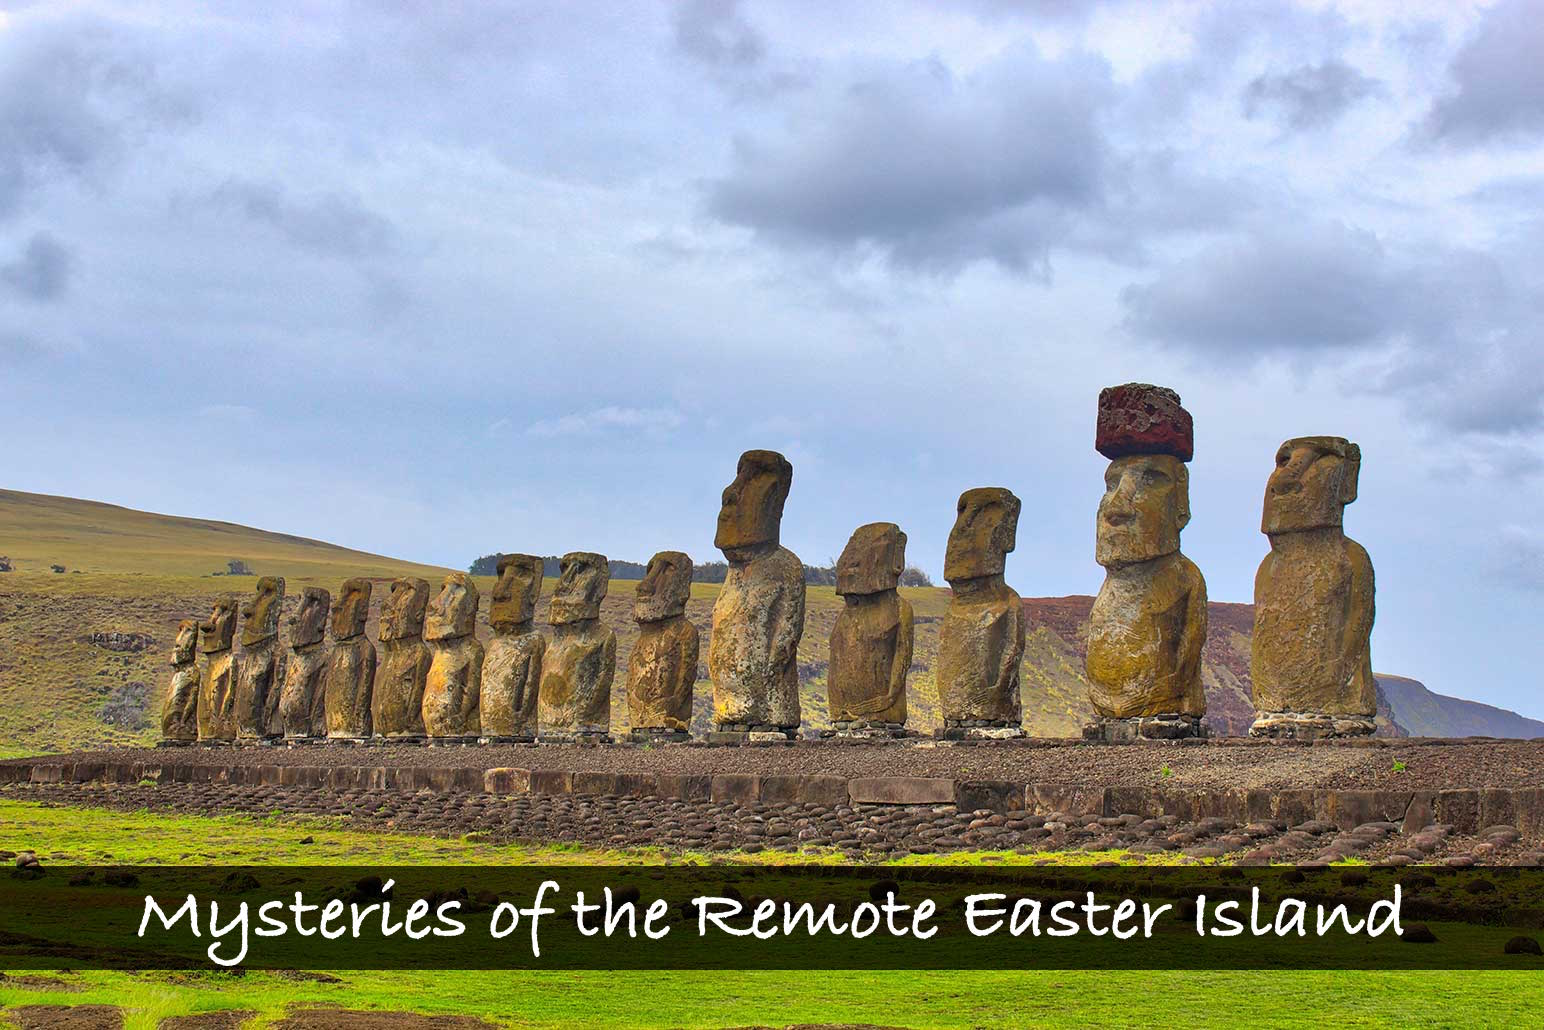 Mysteries of the Remote Easter Island